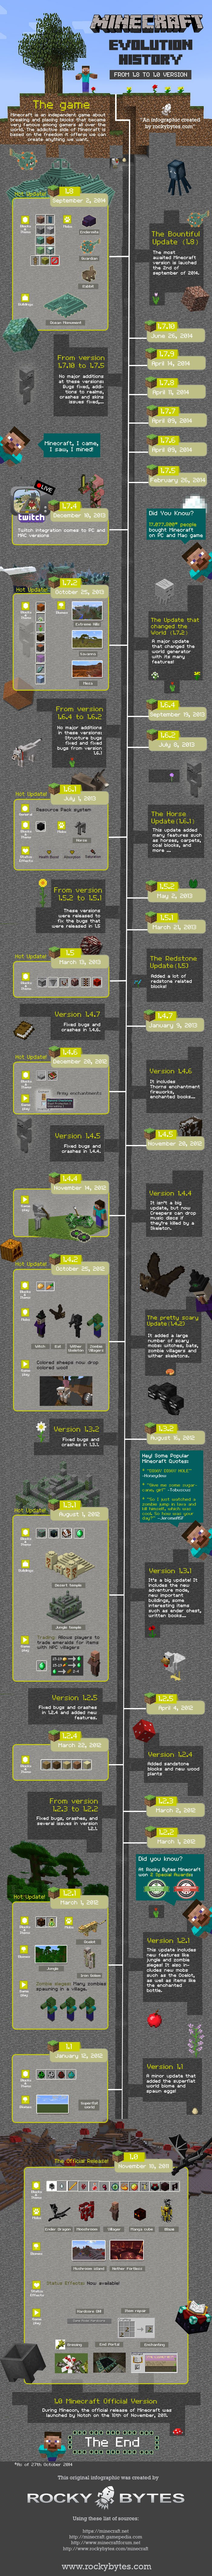 History of Minecraft Infographic